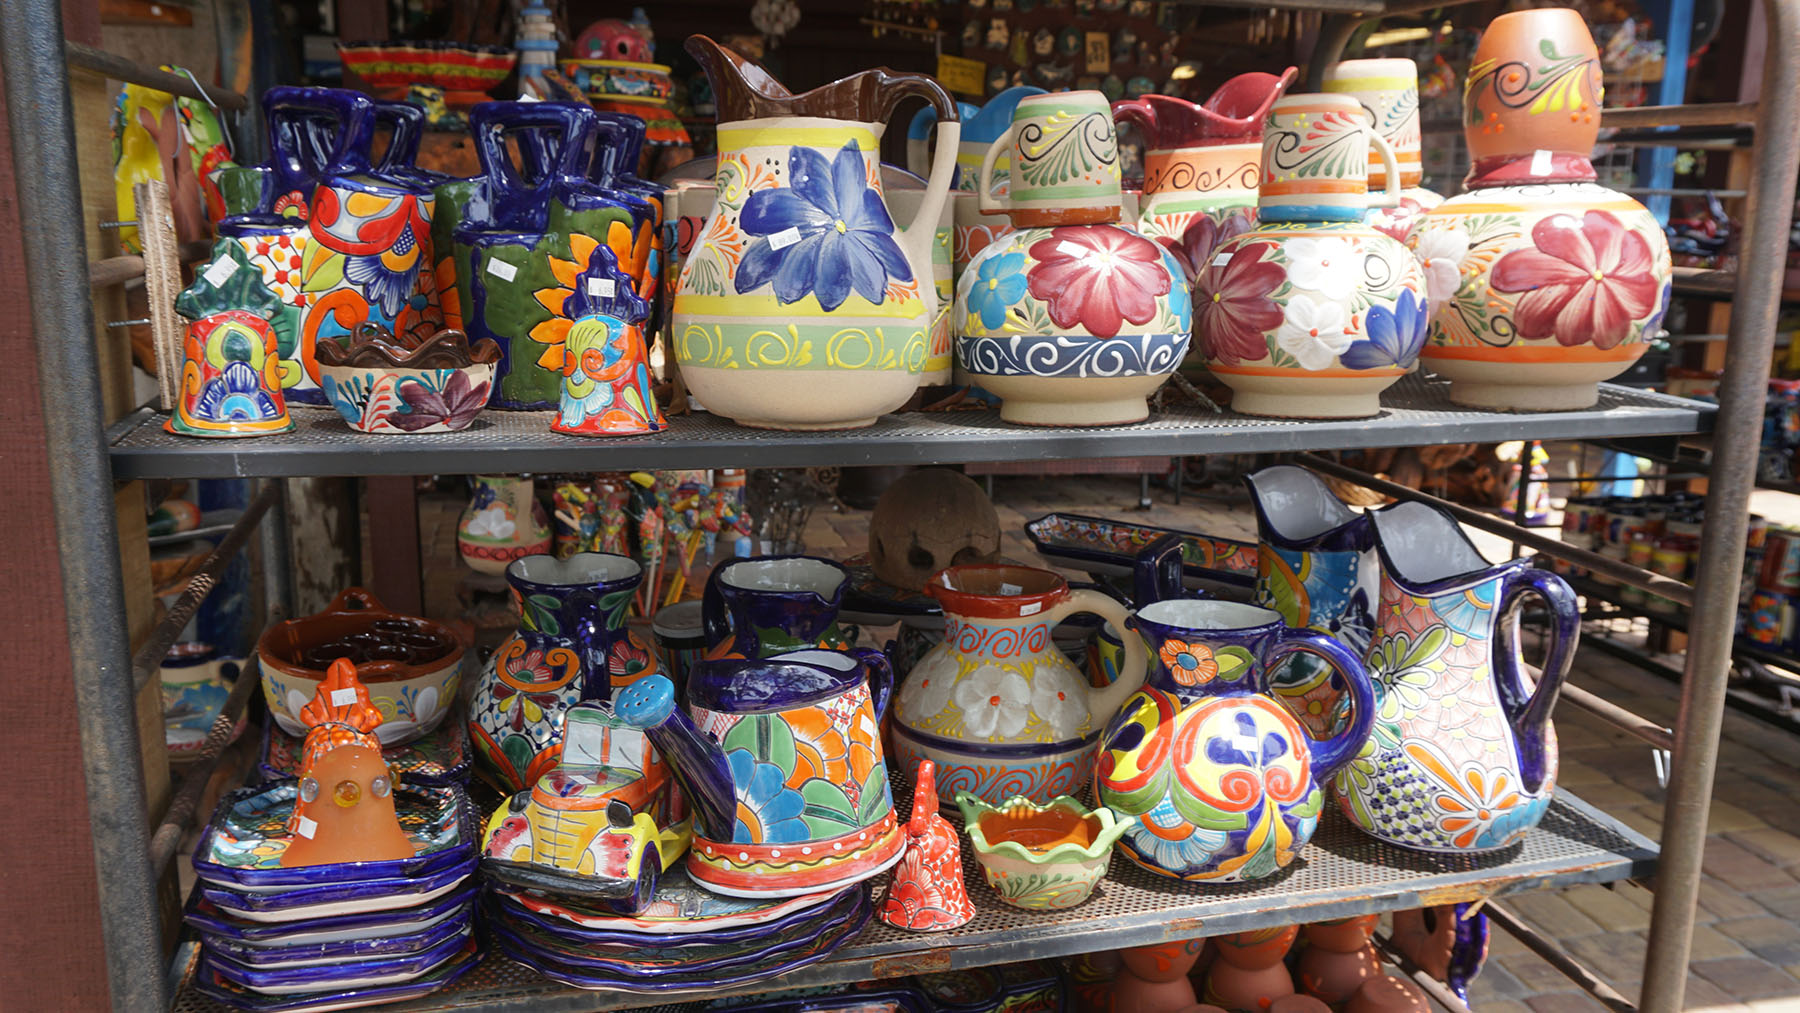 Talavera Pitchers and Table Figurines